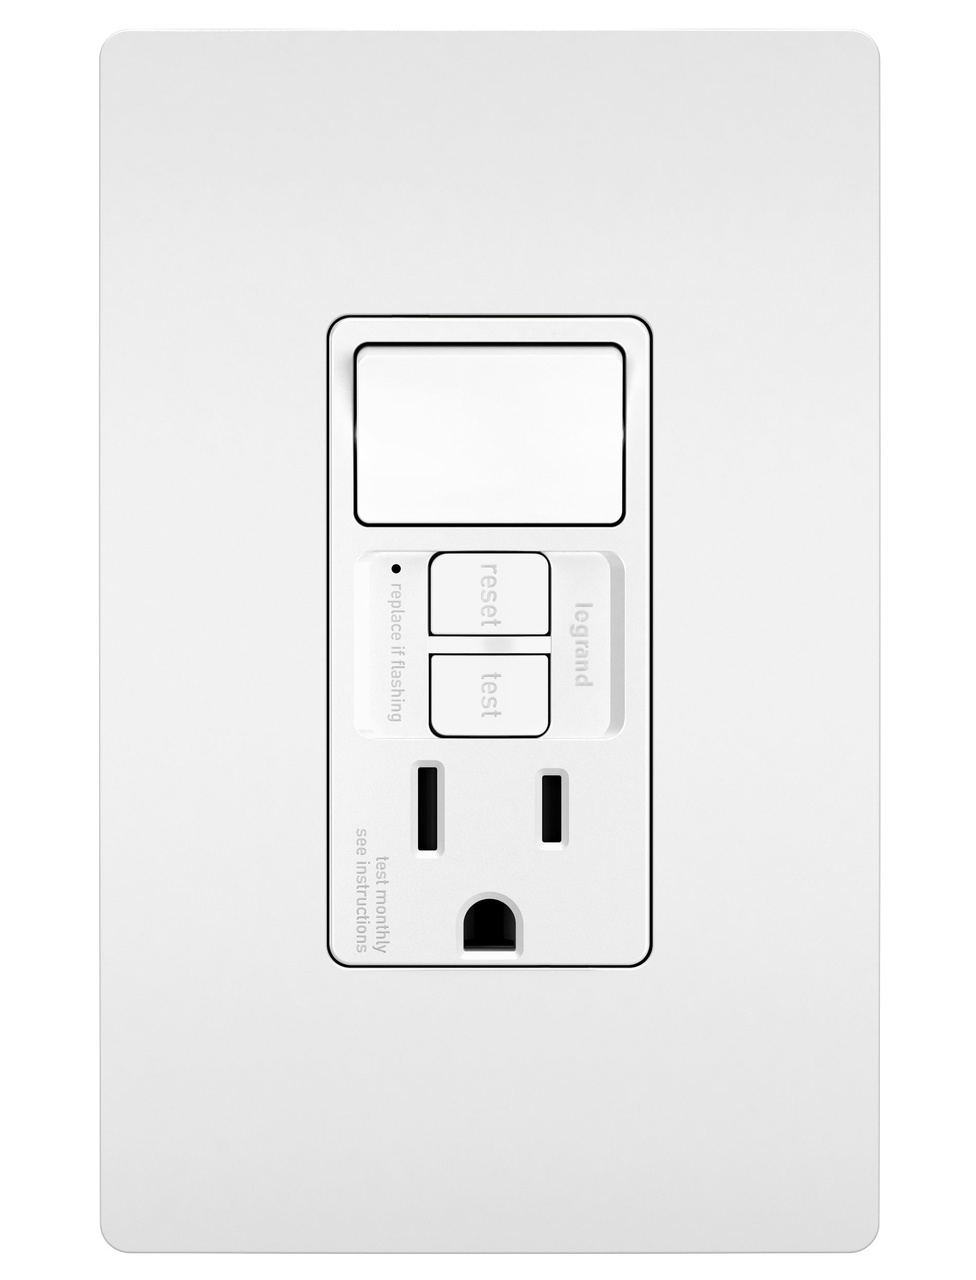 radiant® Combination Tamper-Resistant 15A Self-Test Single ... on lutron three-way dimmer diagram, 3 way lamp wiring diagram, lutron dimmer switches wiring diagram, 3 way dimmer switch installation, easy 3 way switch diagram, touch dimmer wiring diagram, dimmer switch installation diagram, 3 way light wiring diagram, 3 way outlet wiring diagram,